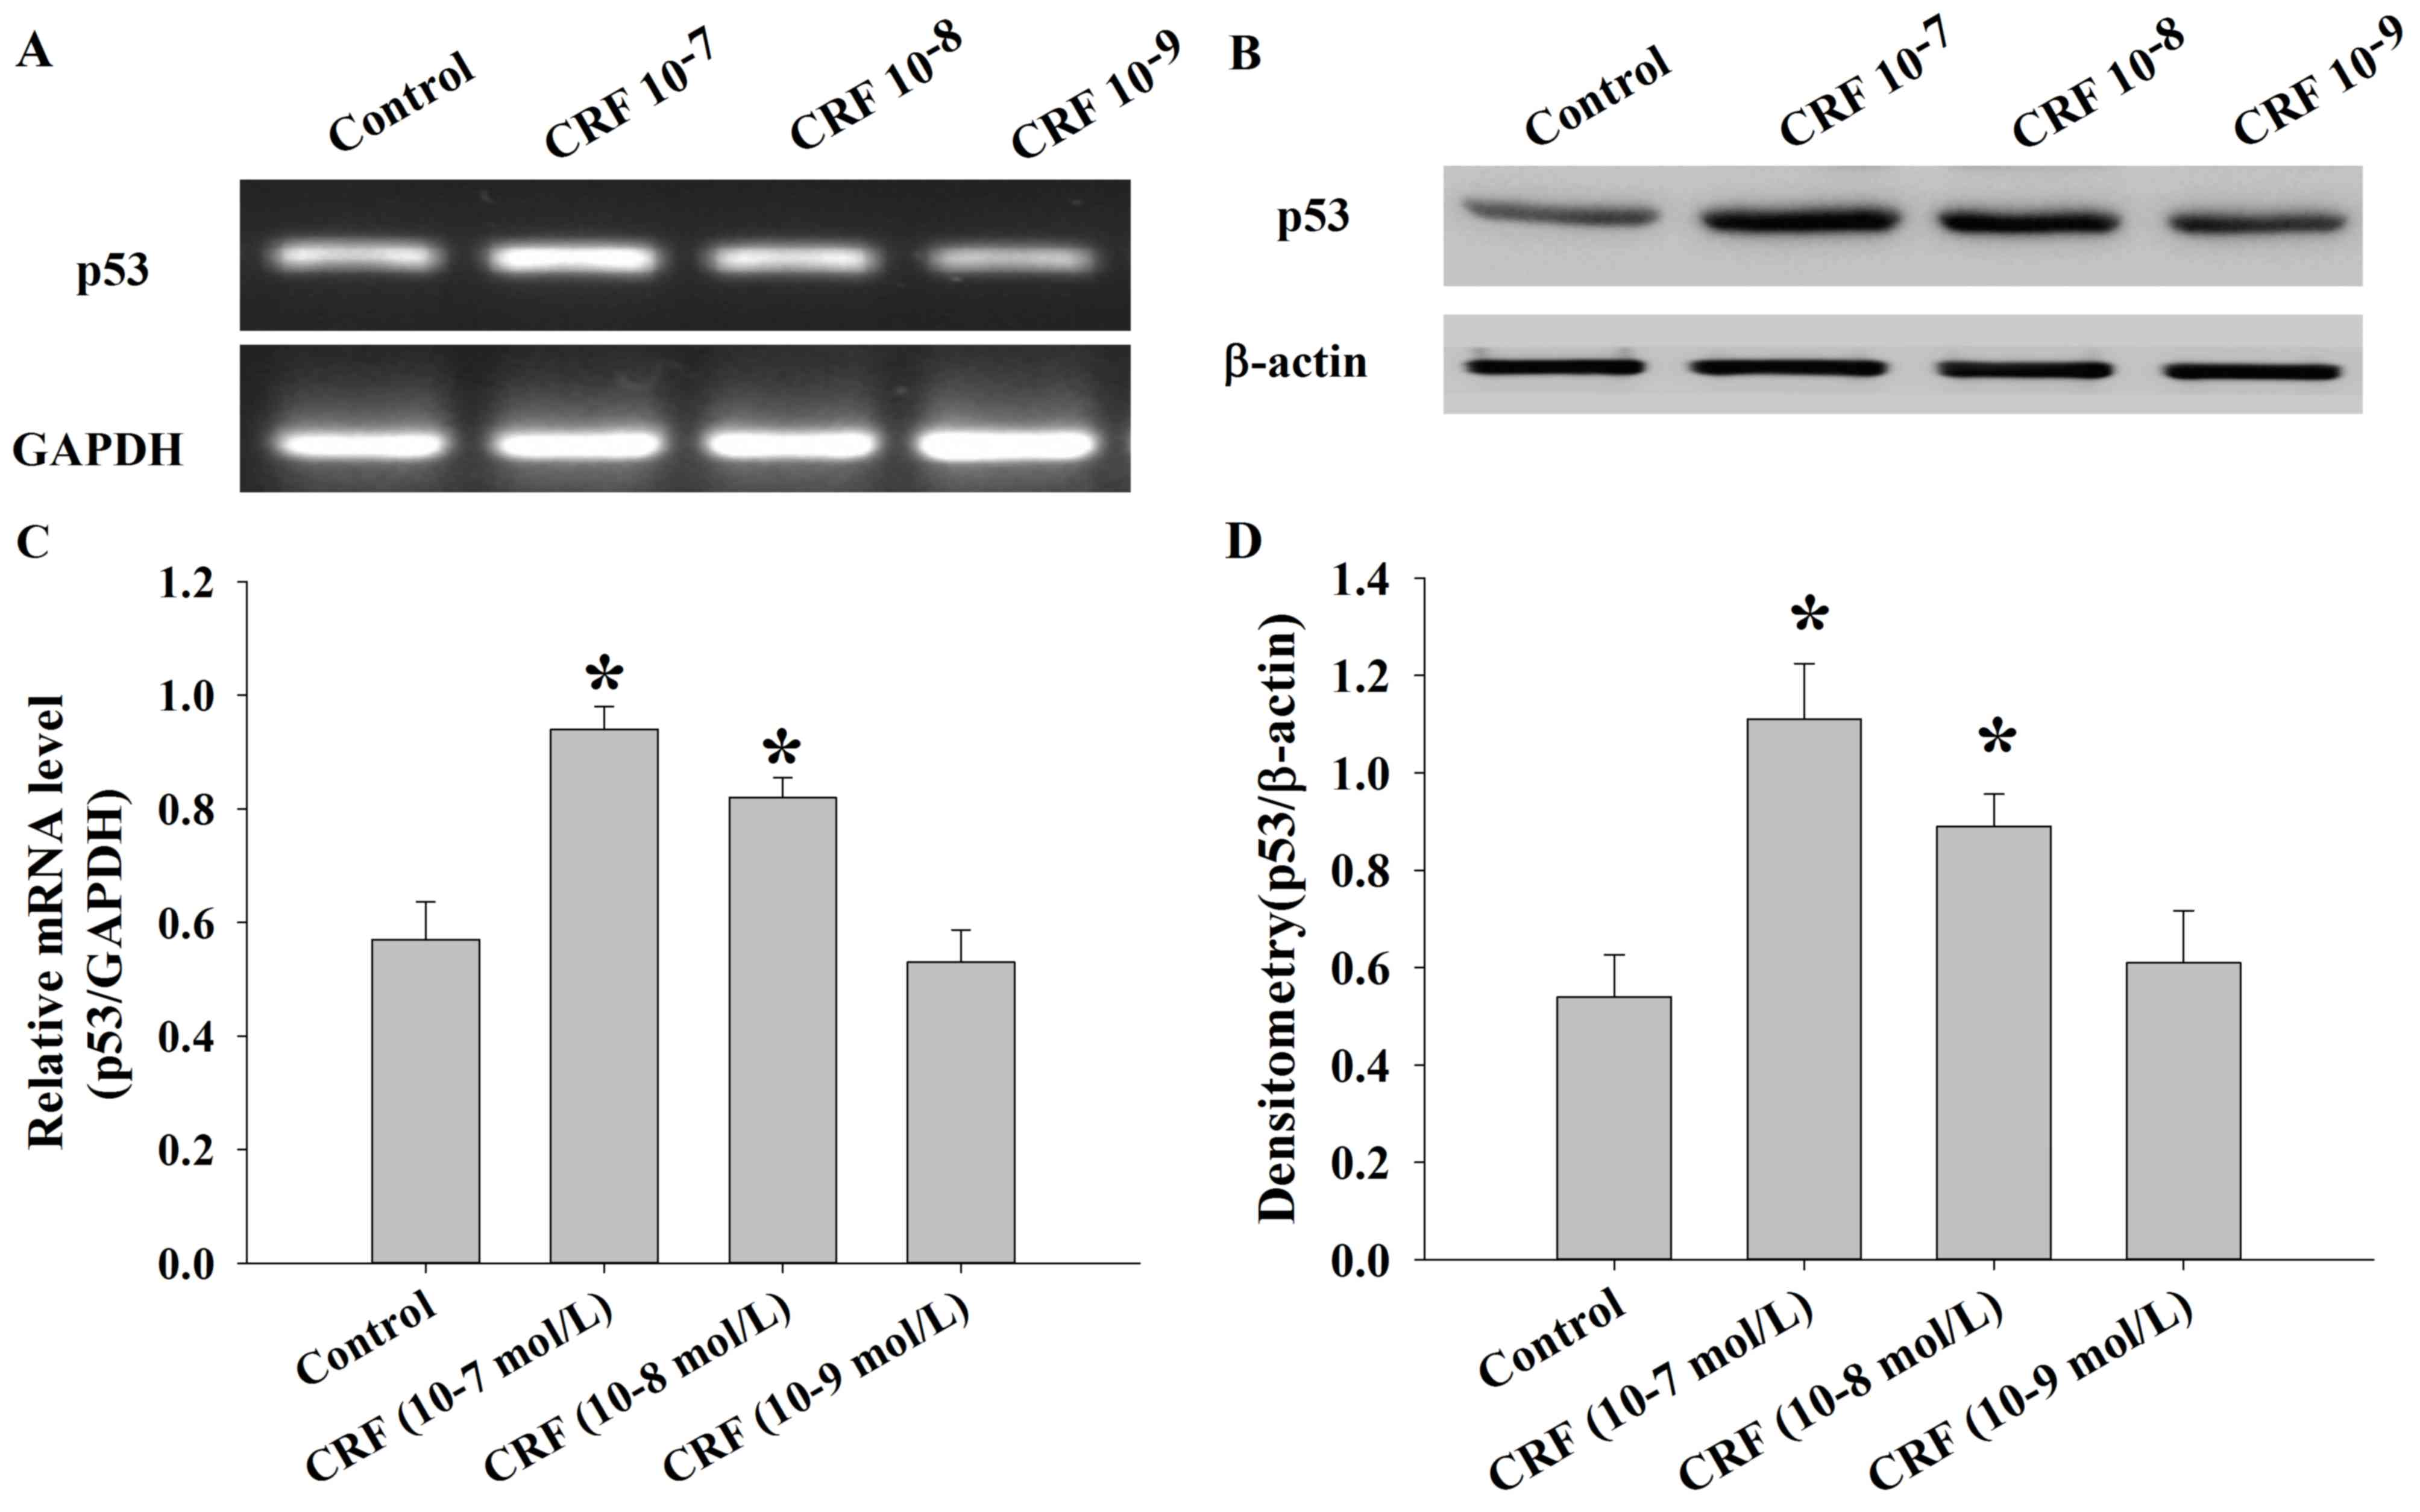 Human corticotrophin releasing factor inhibits cell